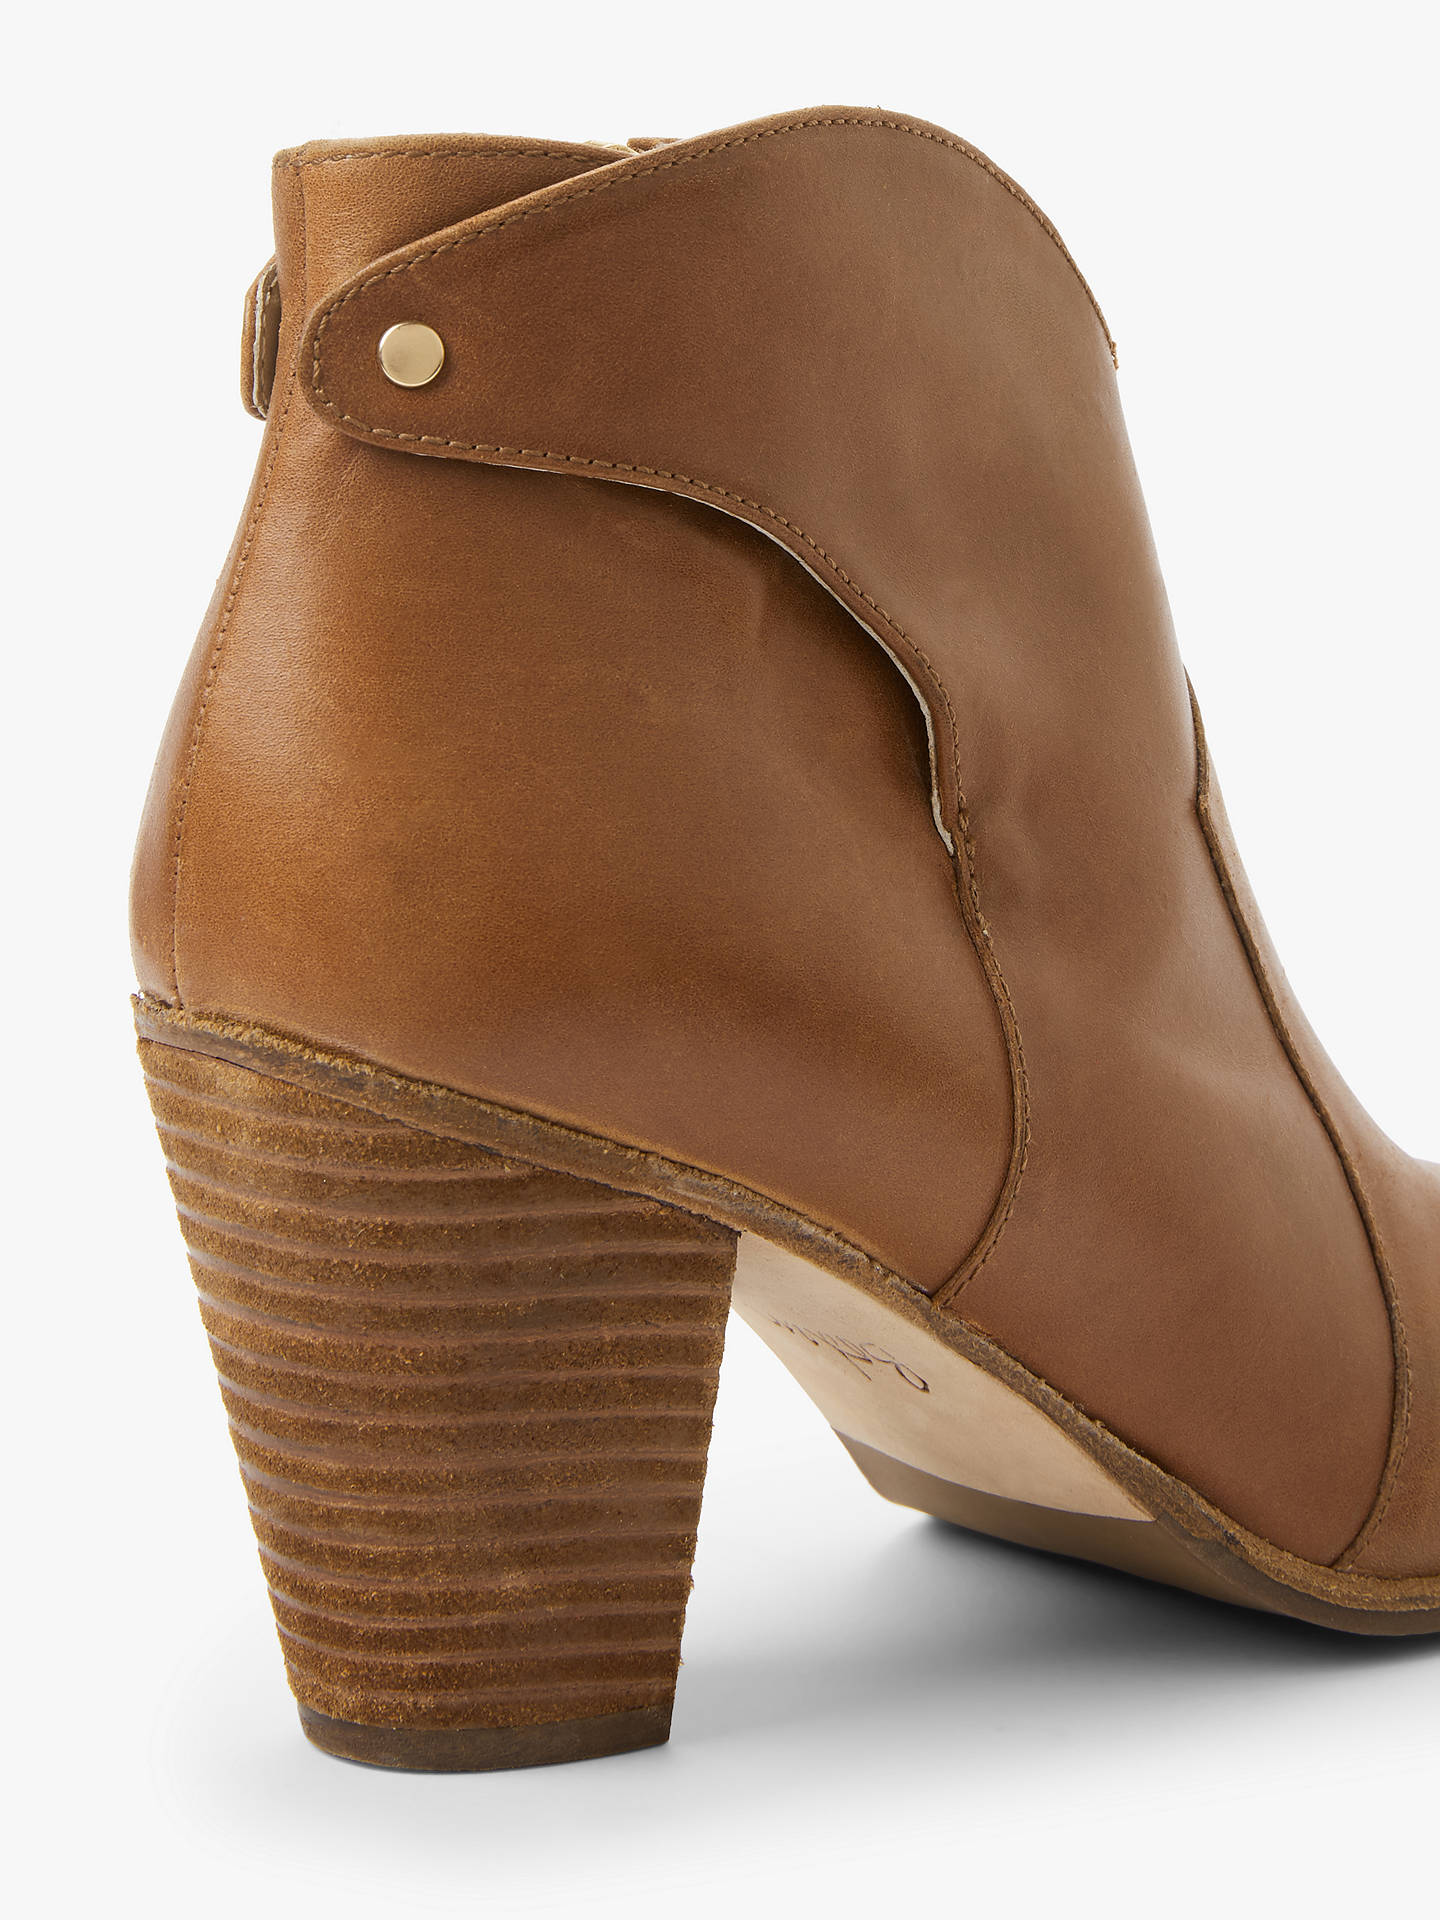 BuyBoden Hoxton Heeled Ankle Boots, Tan Leather, 4 Online at johnlewis.com